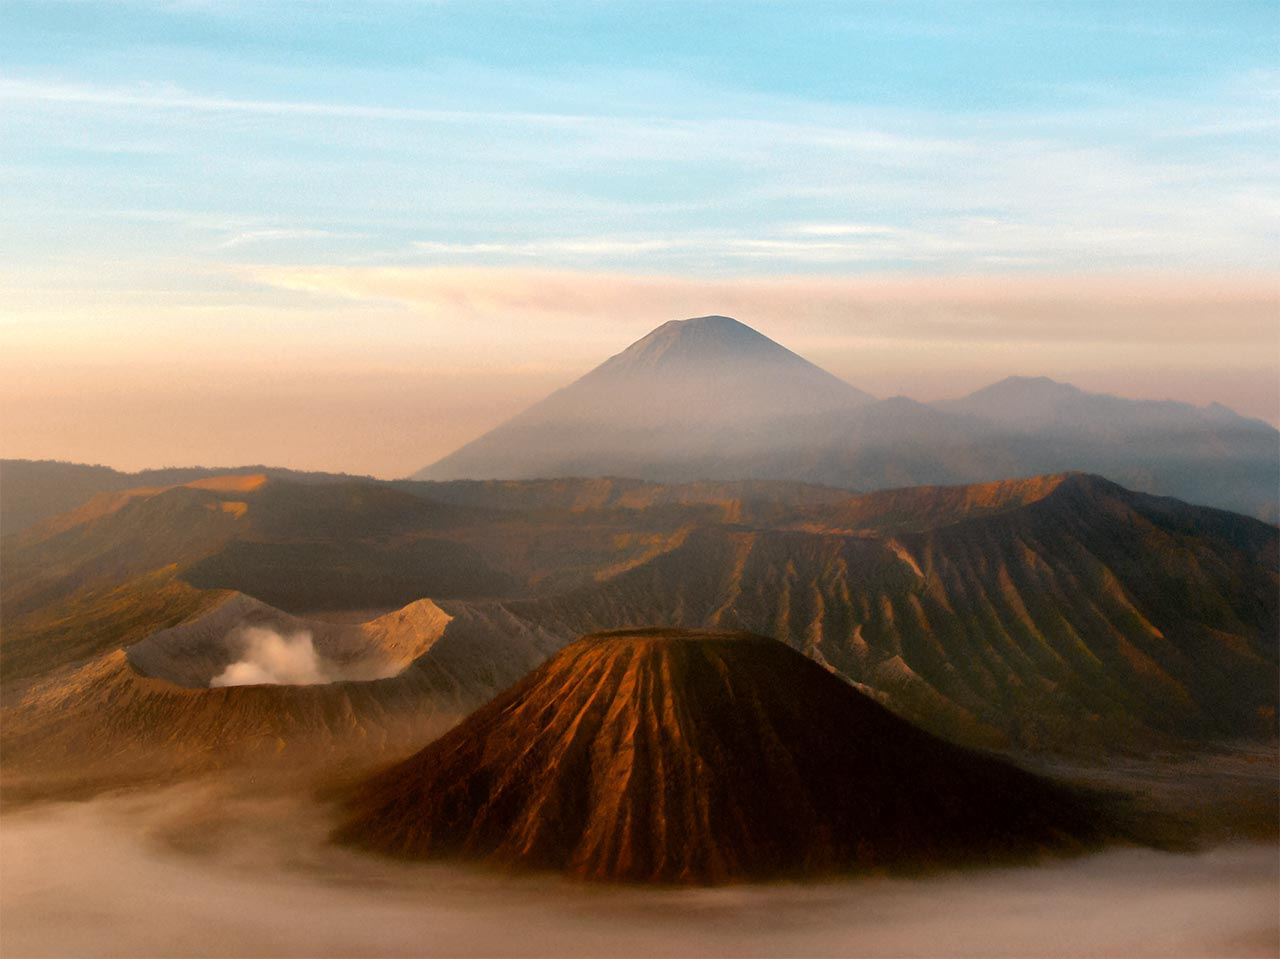 Steam rises from Mount Bromo's crater (in the foreground). It is one the most active volcanoes in the world. Mount Semeru stands tall at the background.